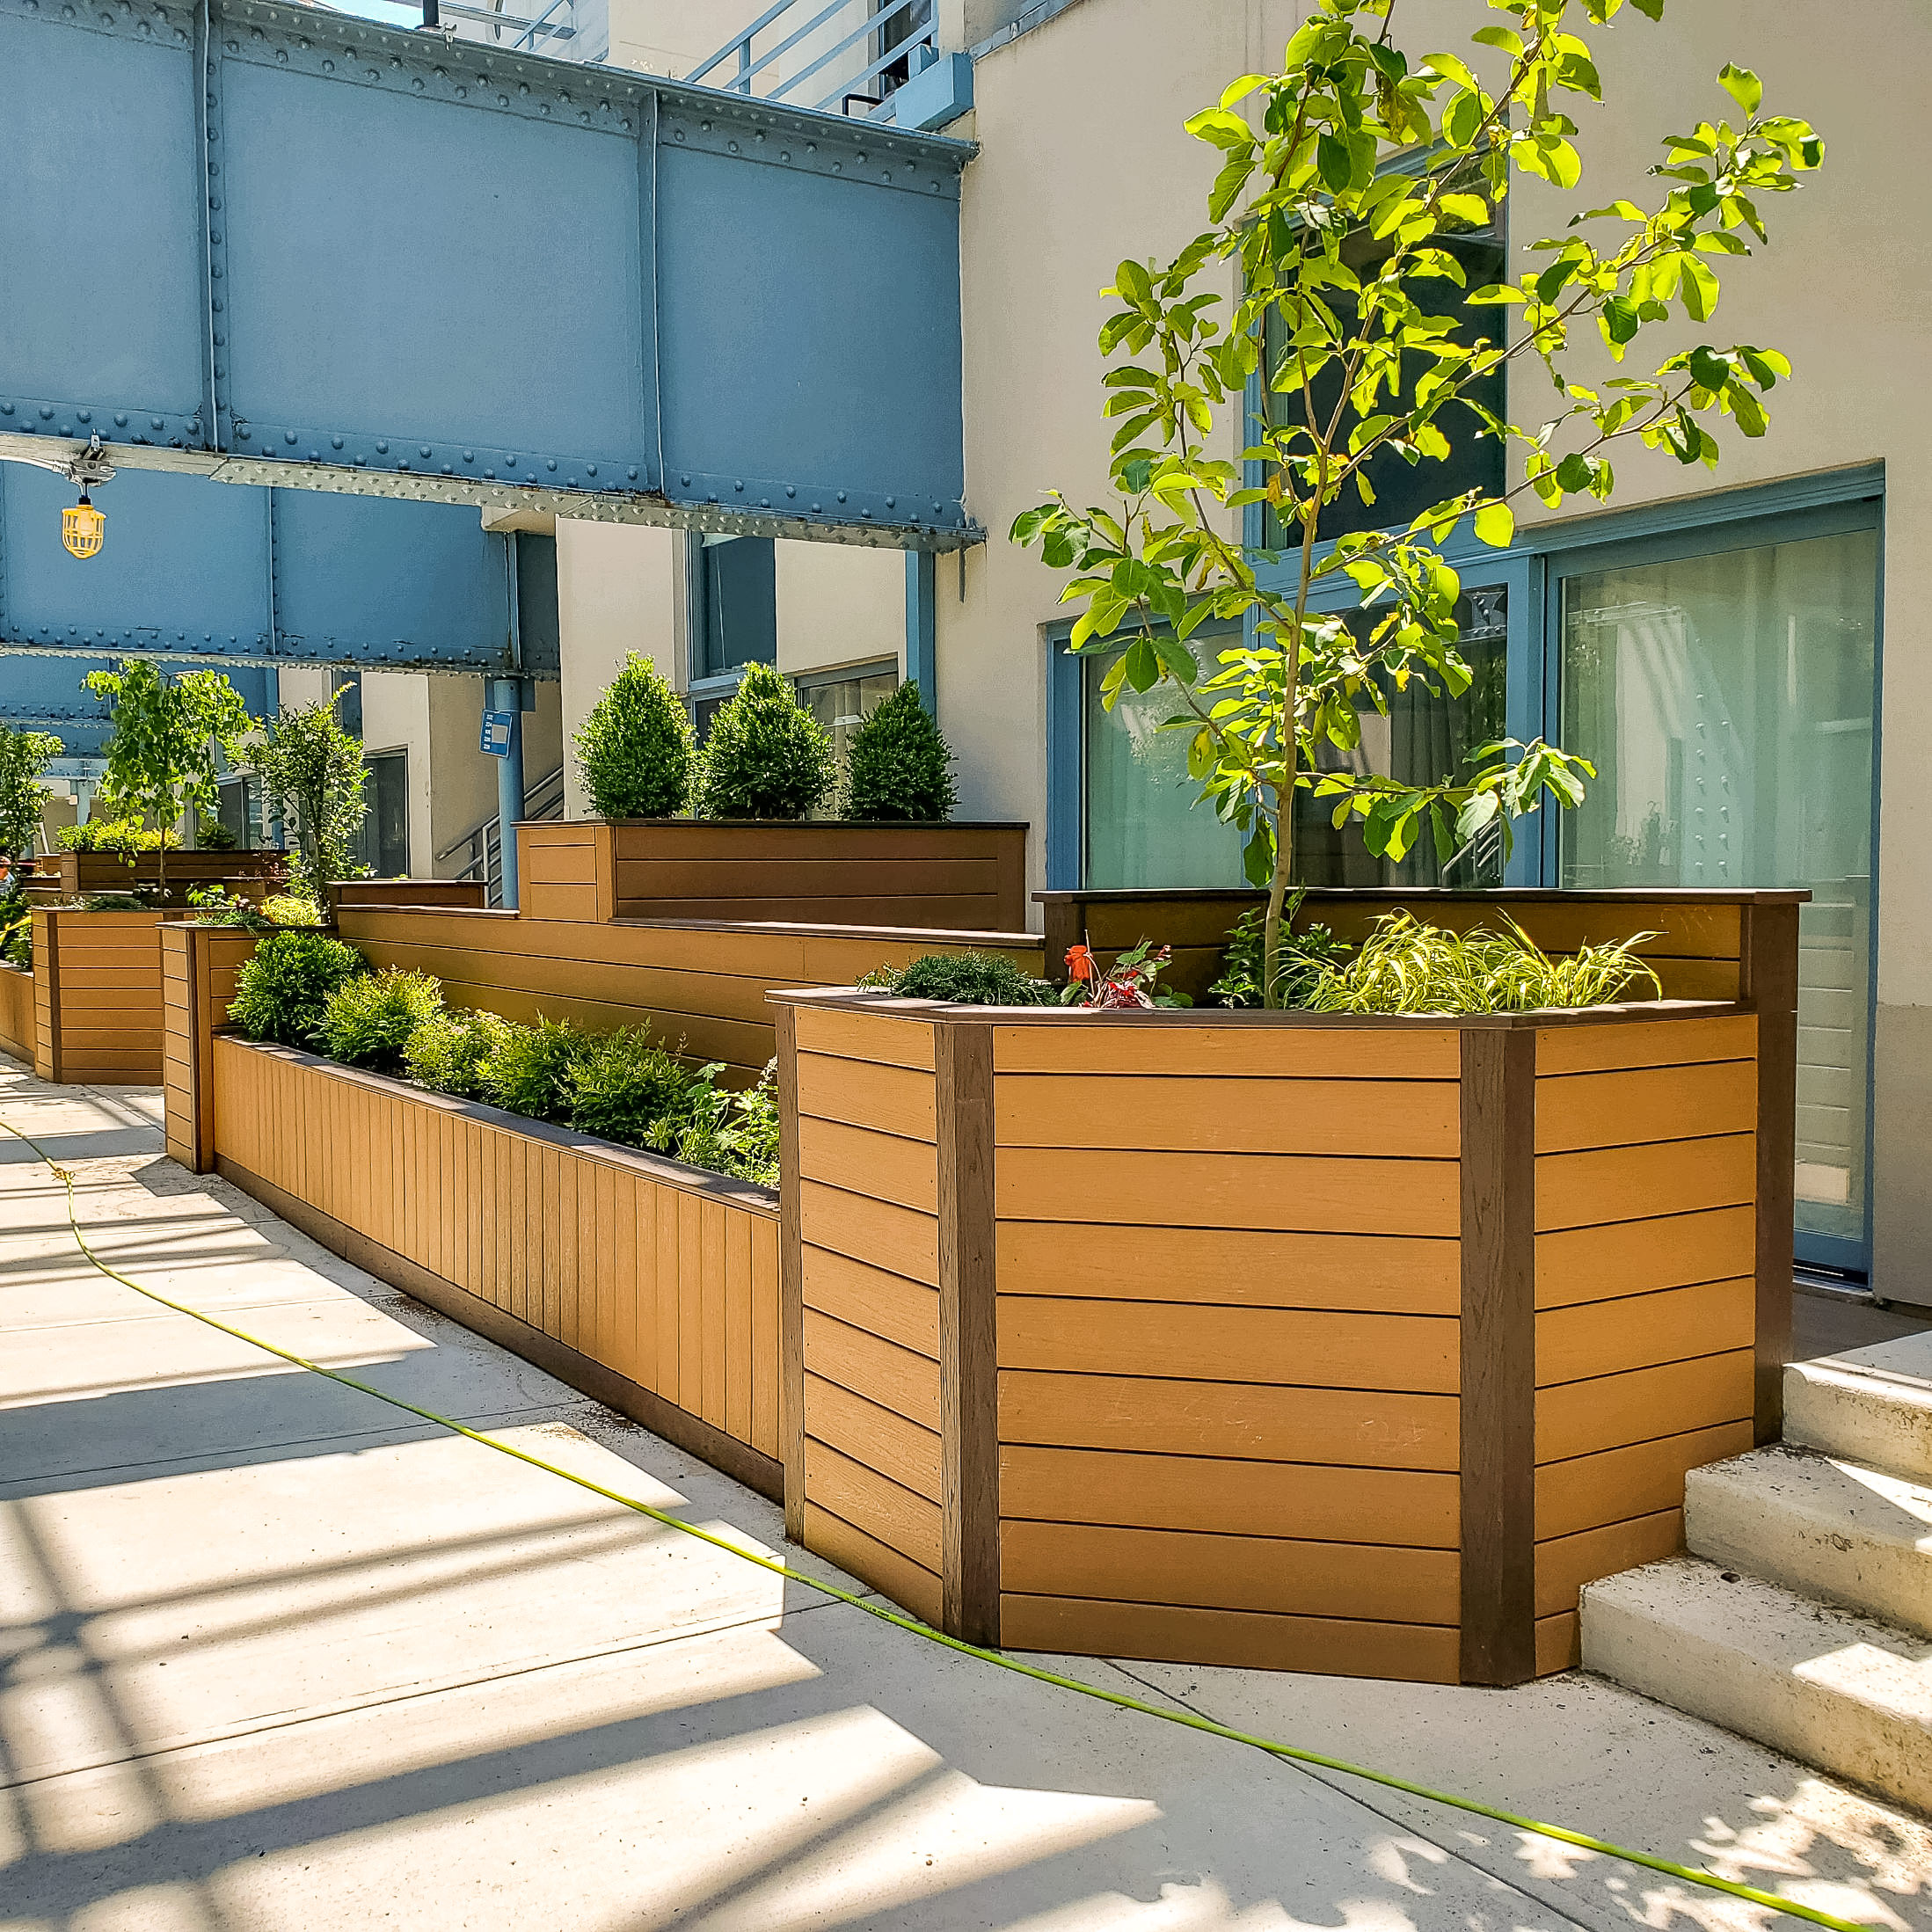 Use Composite Decking To Make Durable Planter Boxes Tague Lumber